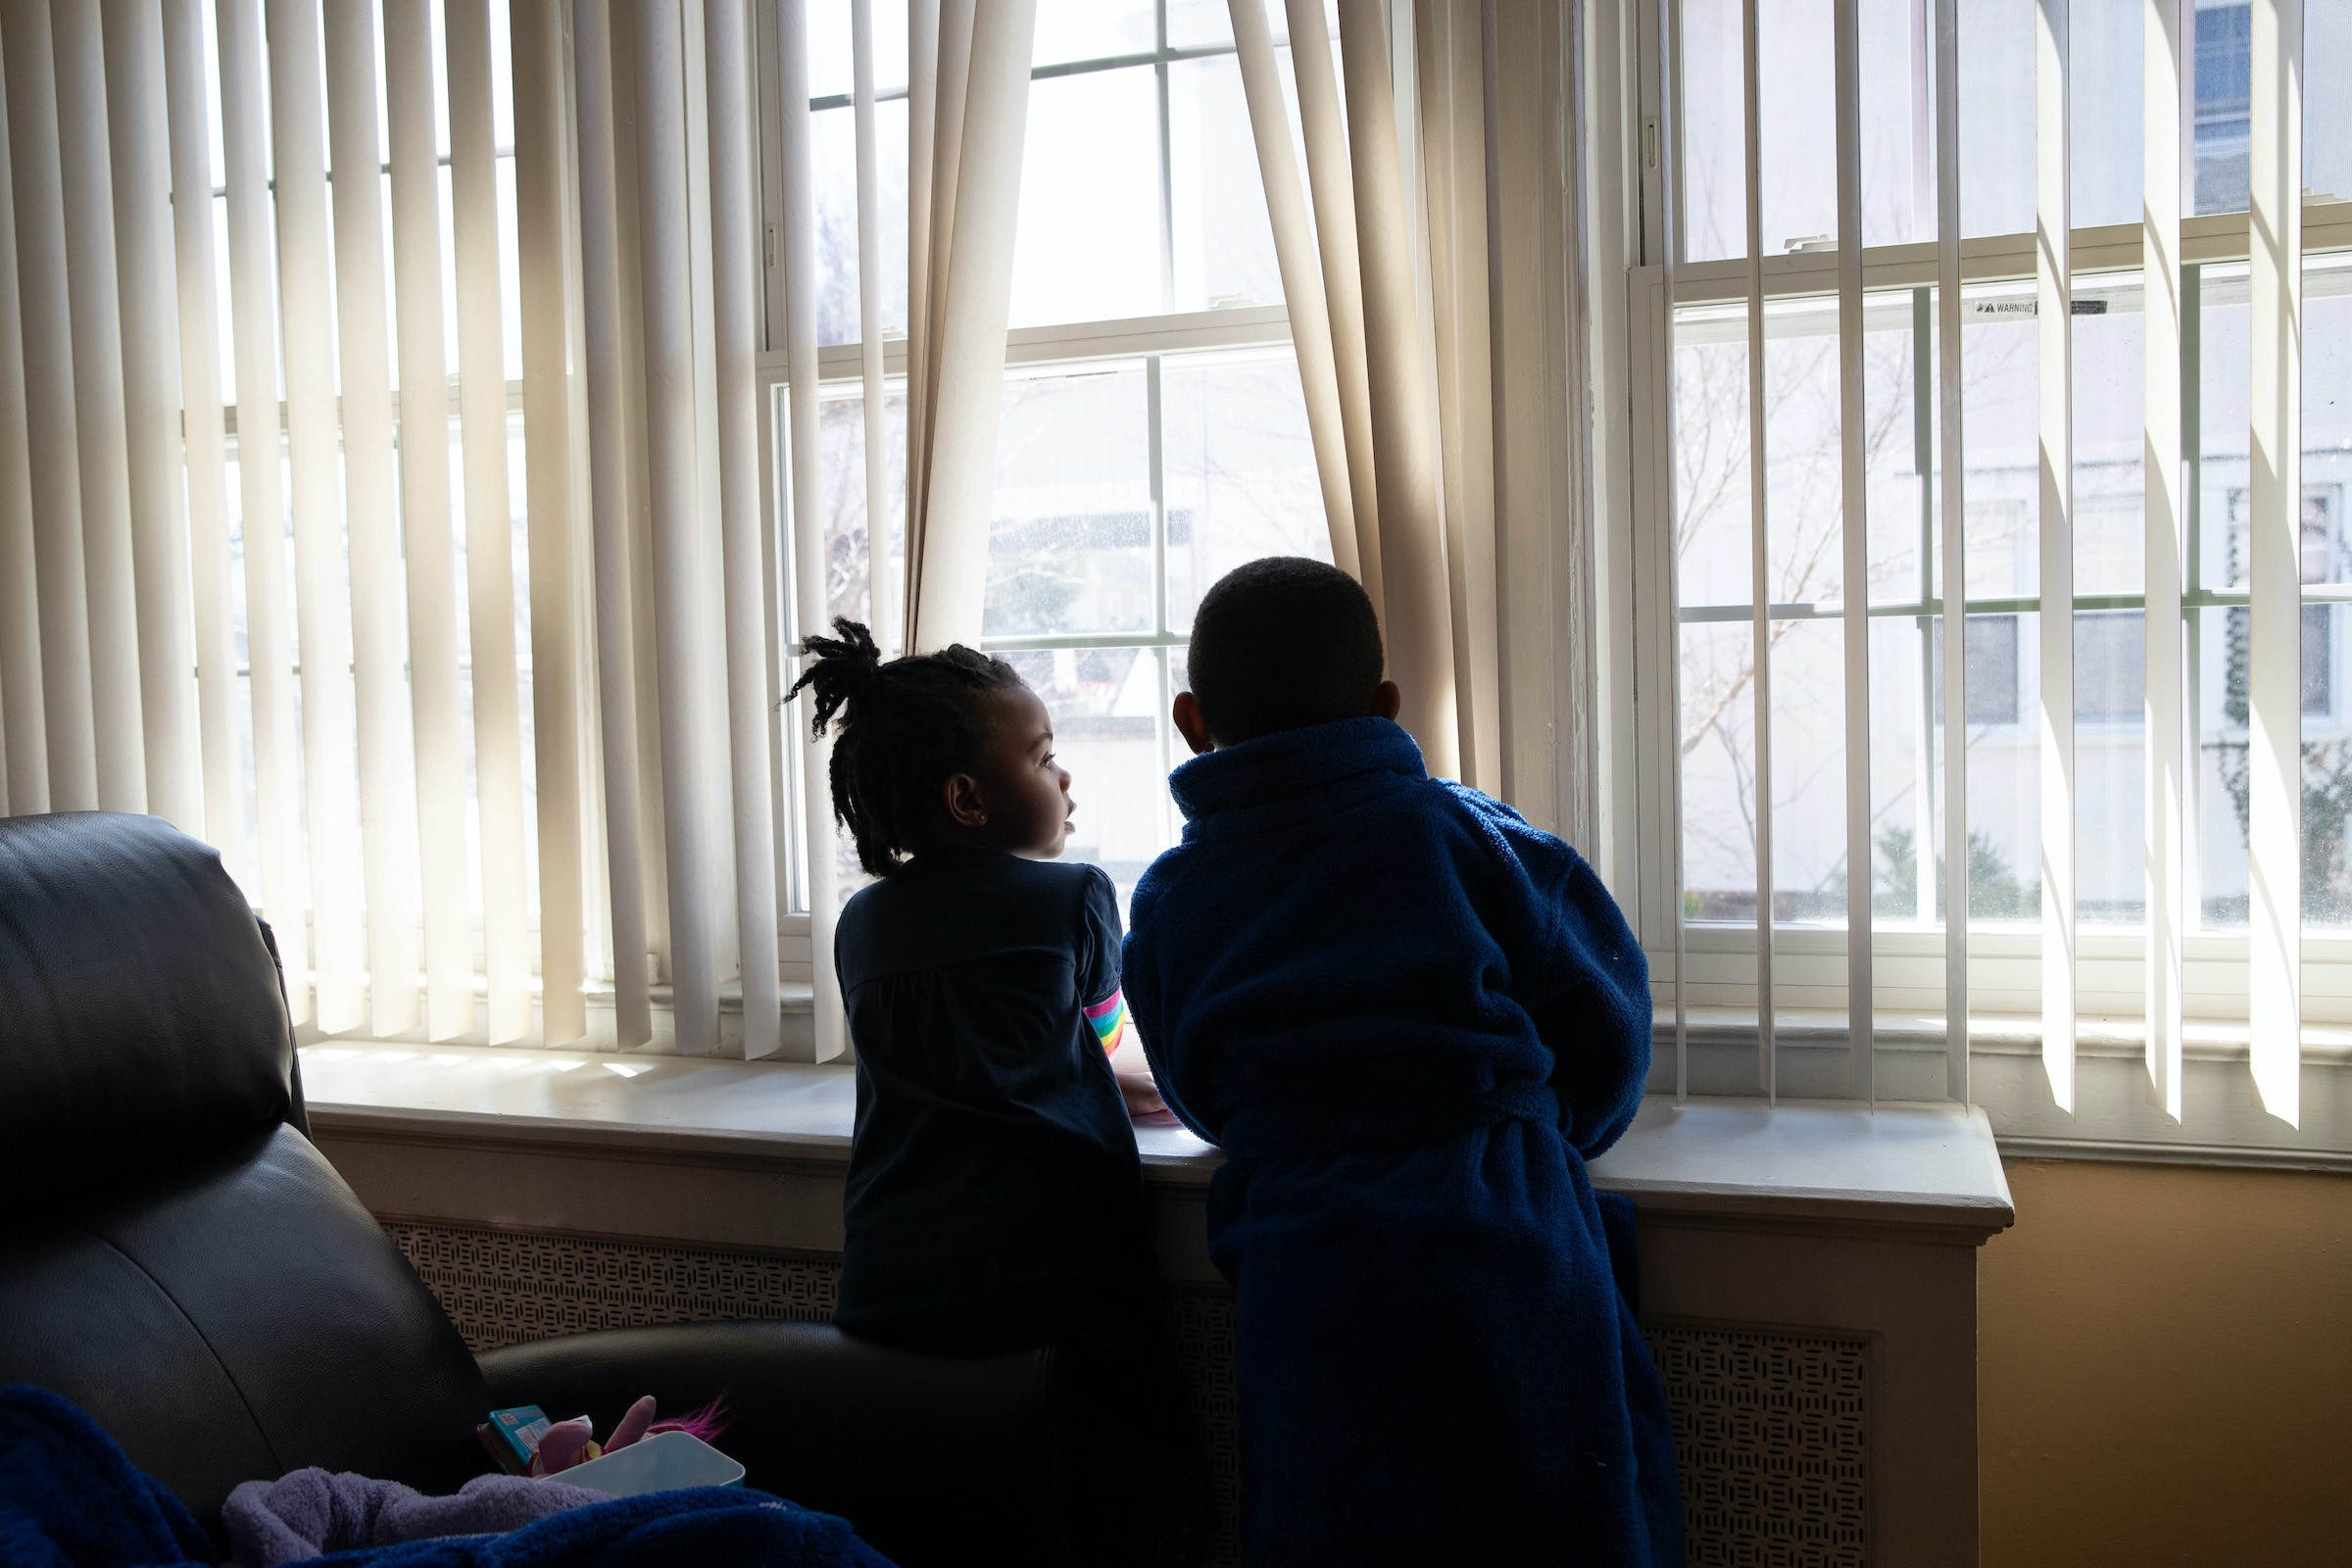 Two Black children holding vertical blinds apart to look out a window.